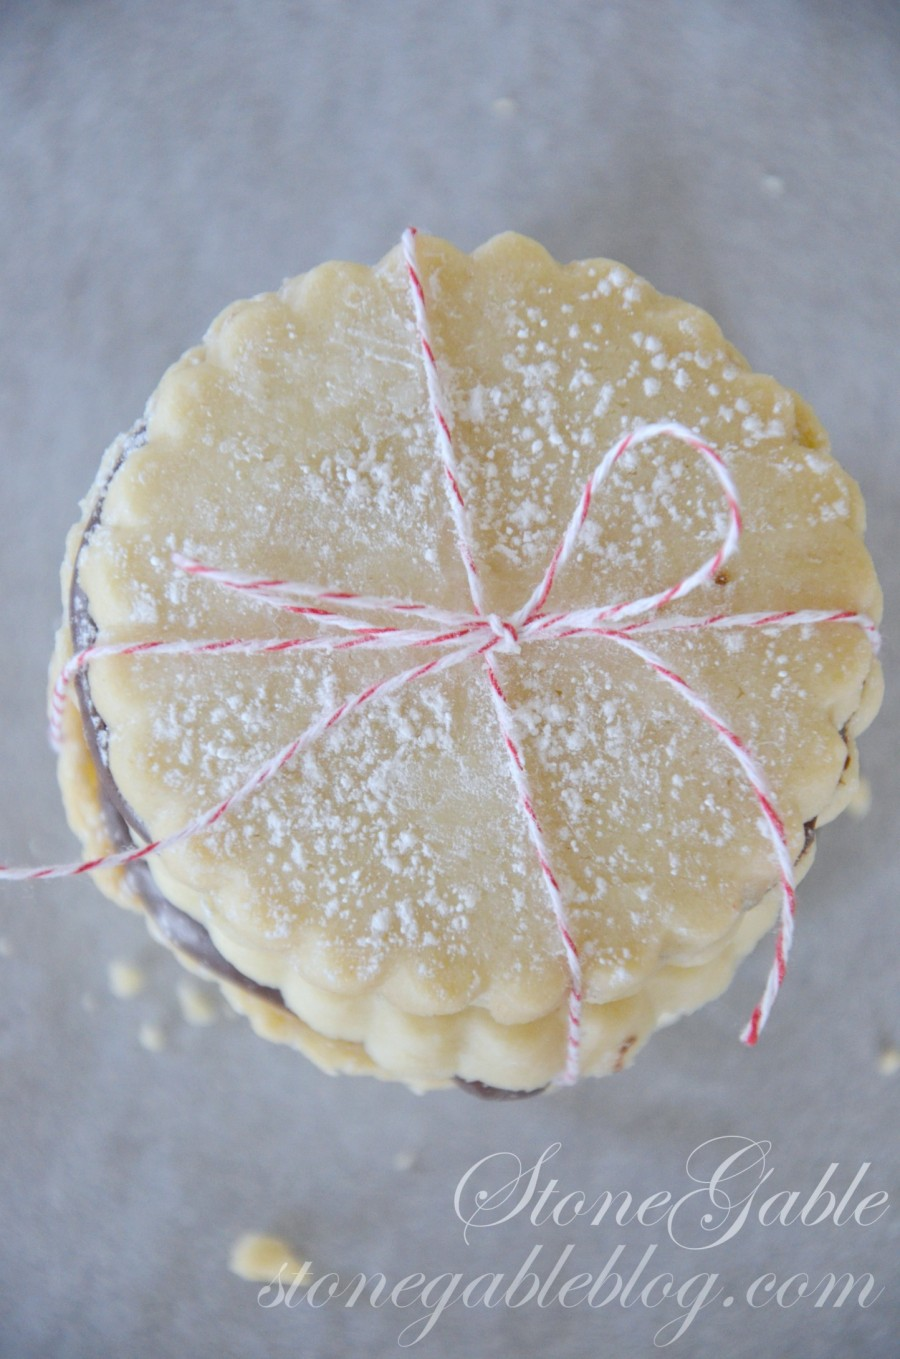 CHOCOLATE FILLED SHORTBREAD COOKIES- shortbreads with twine- stongableblog.com